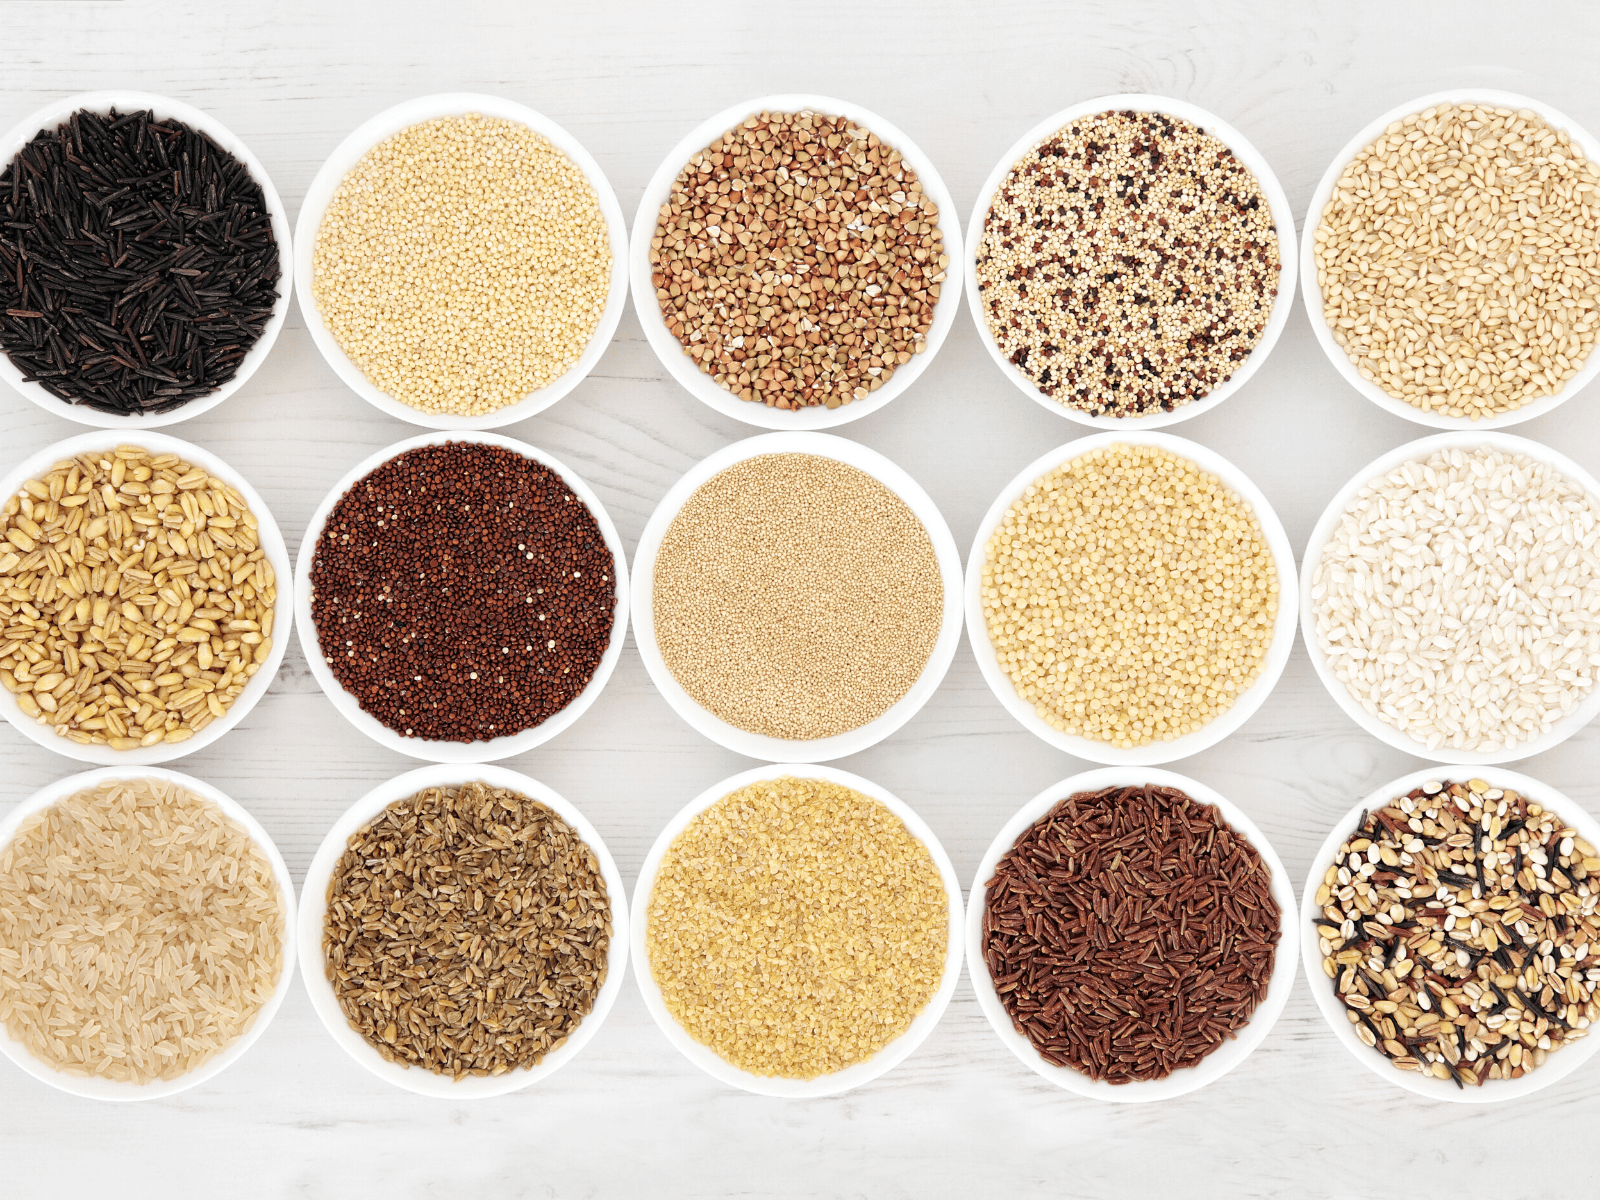 Overhead photograph of grains that can be soaked.